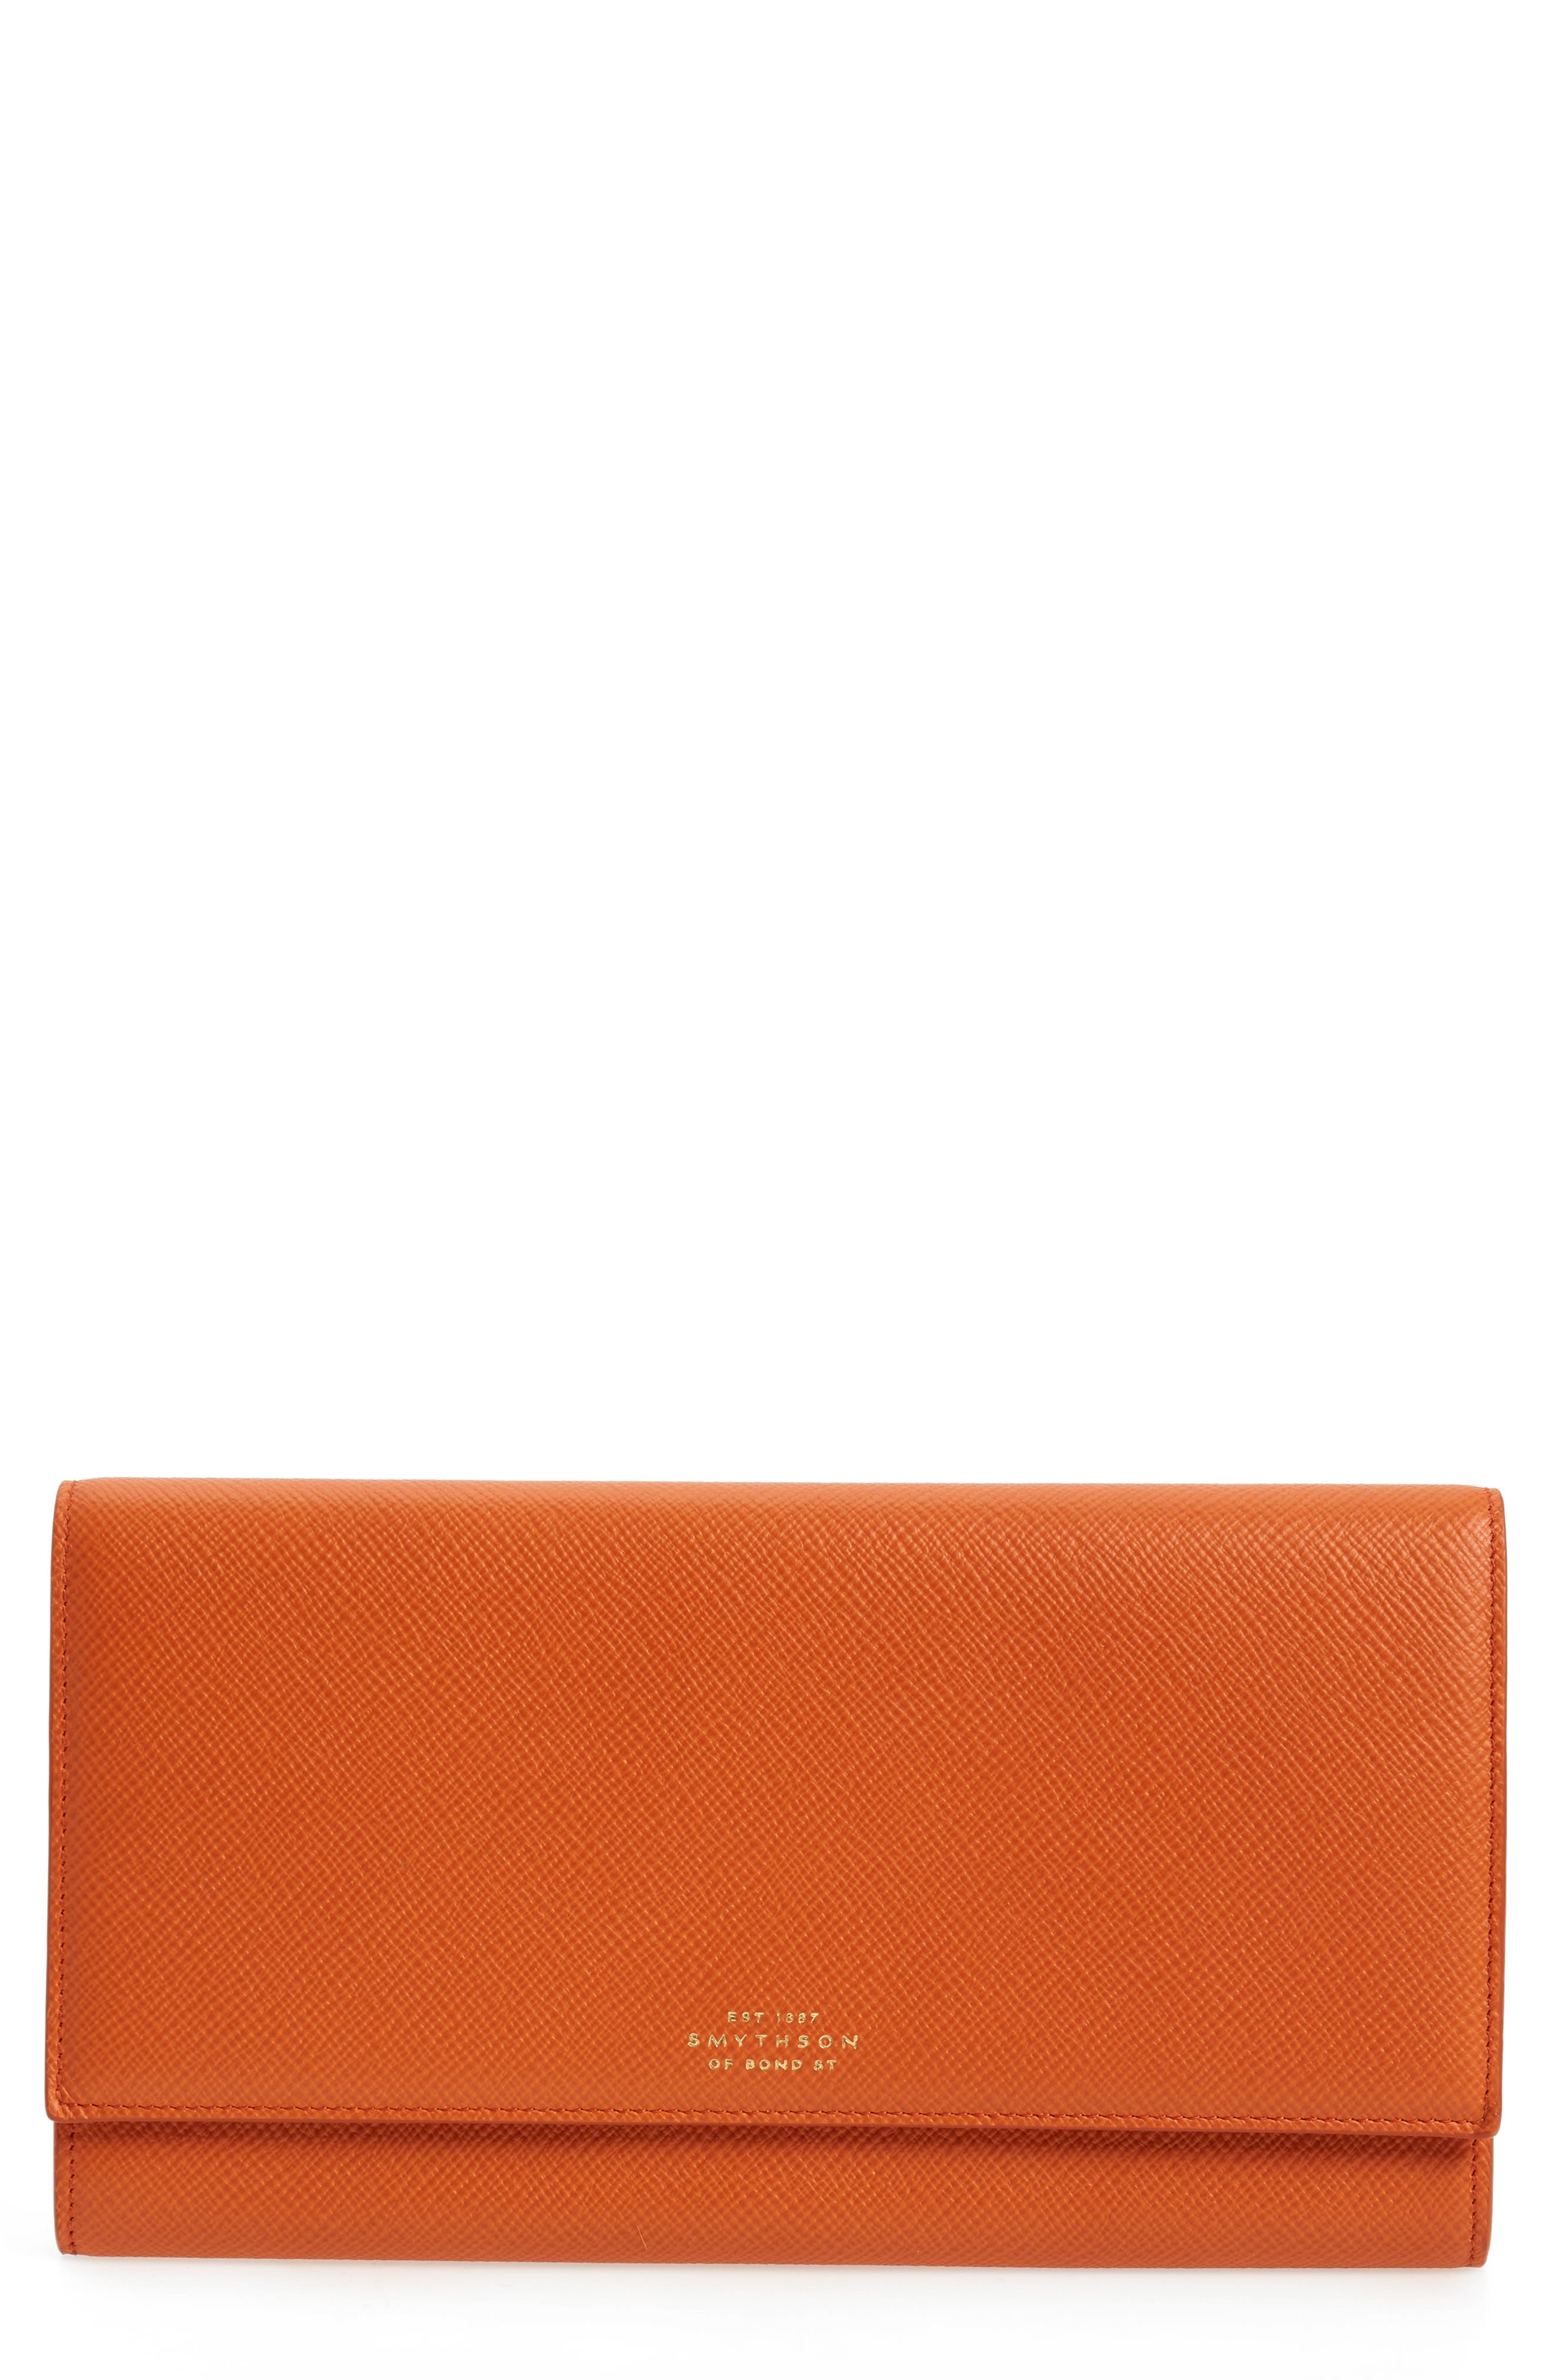 Panama Marshall Calfskin Leather Travel Wallet,                         Main,                         color, 800